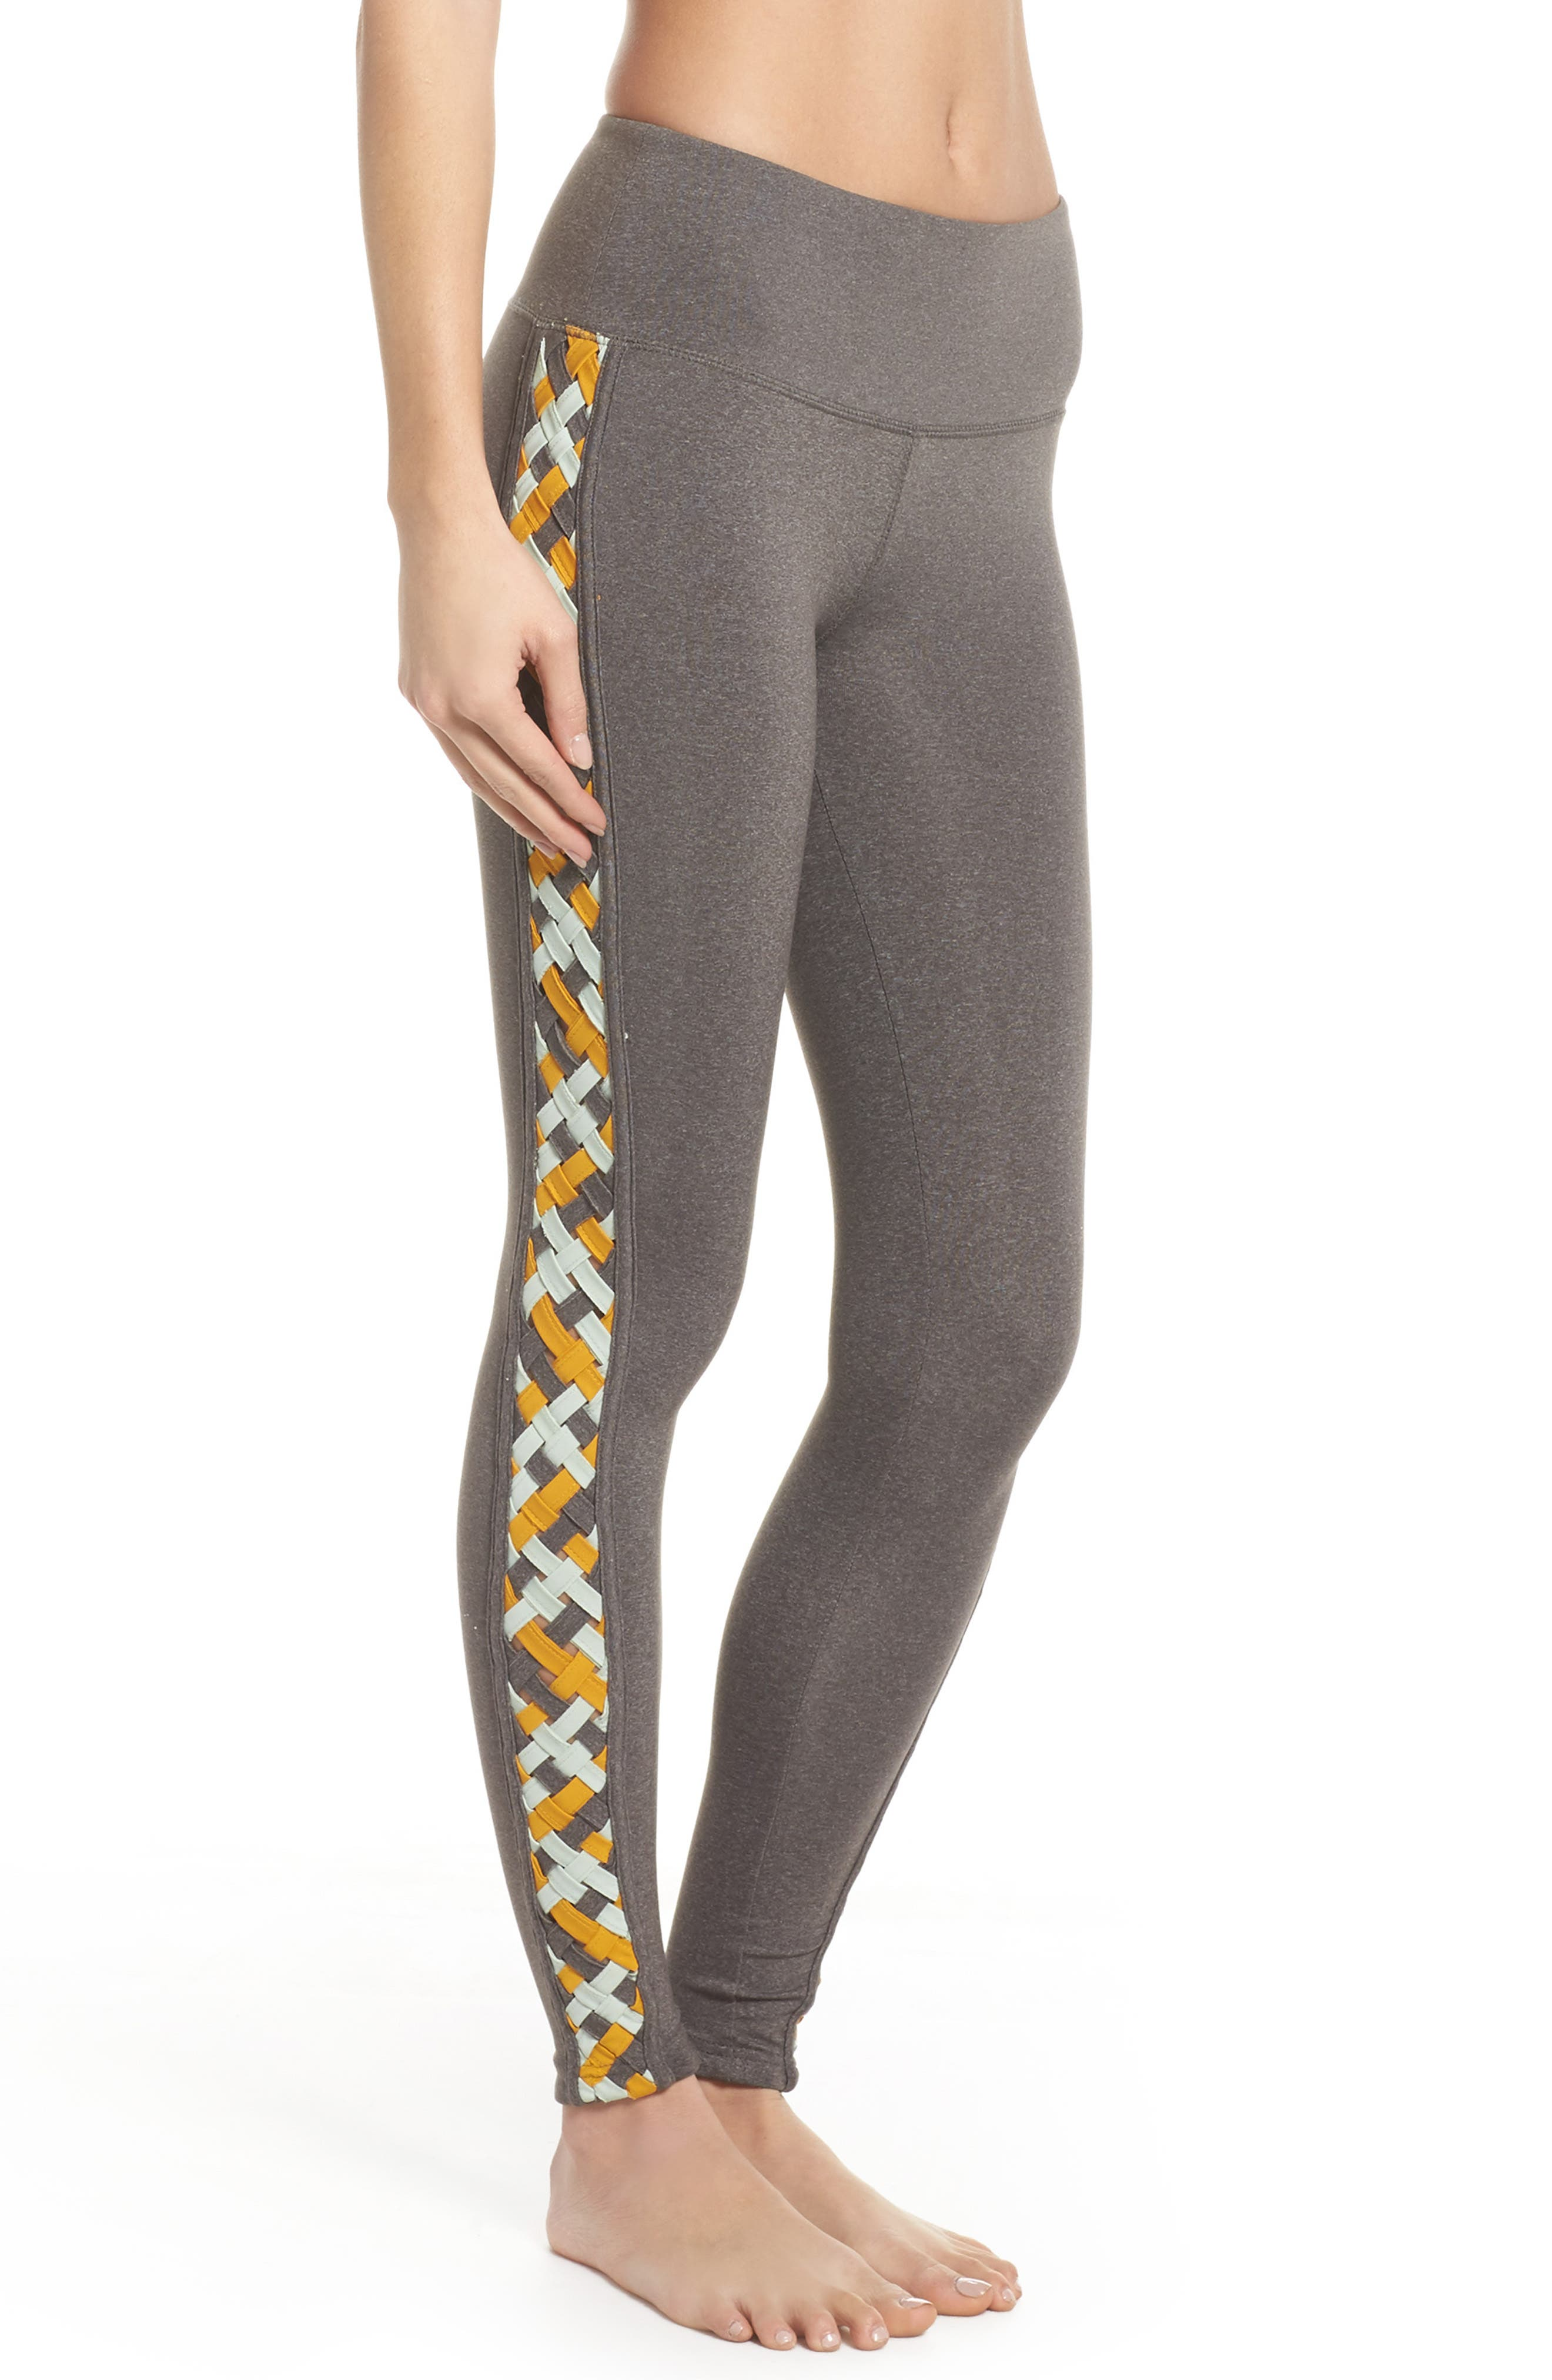 Free People Vision Leggings,                             Alternate thumbnail 3, color,                             058